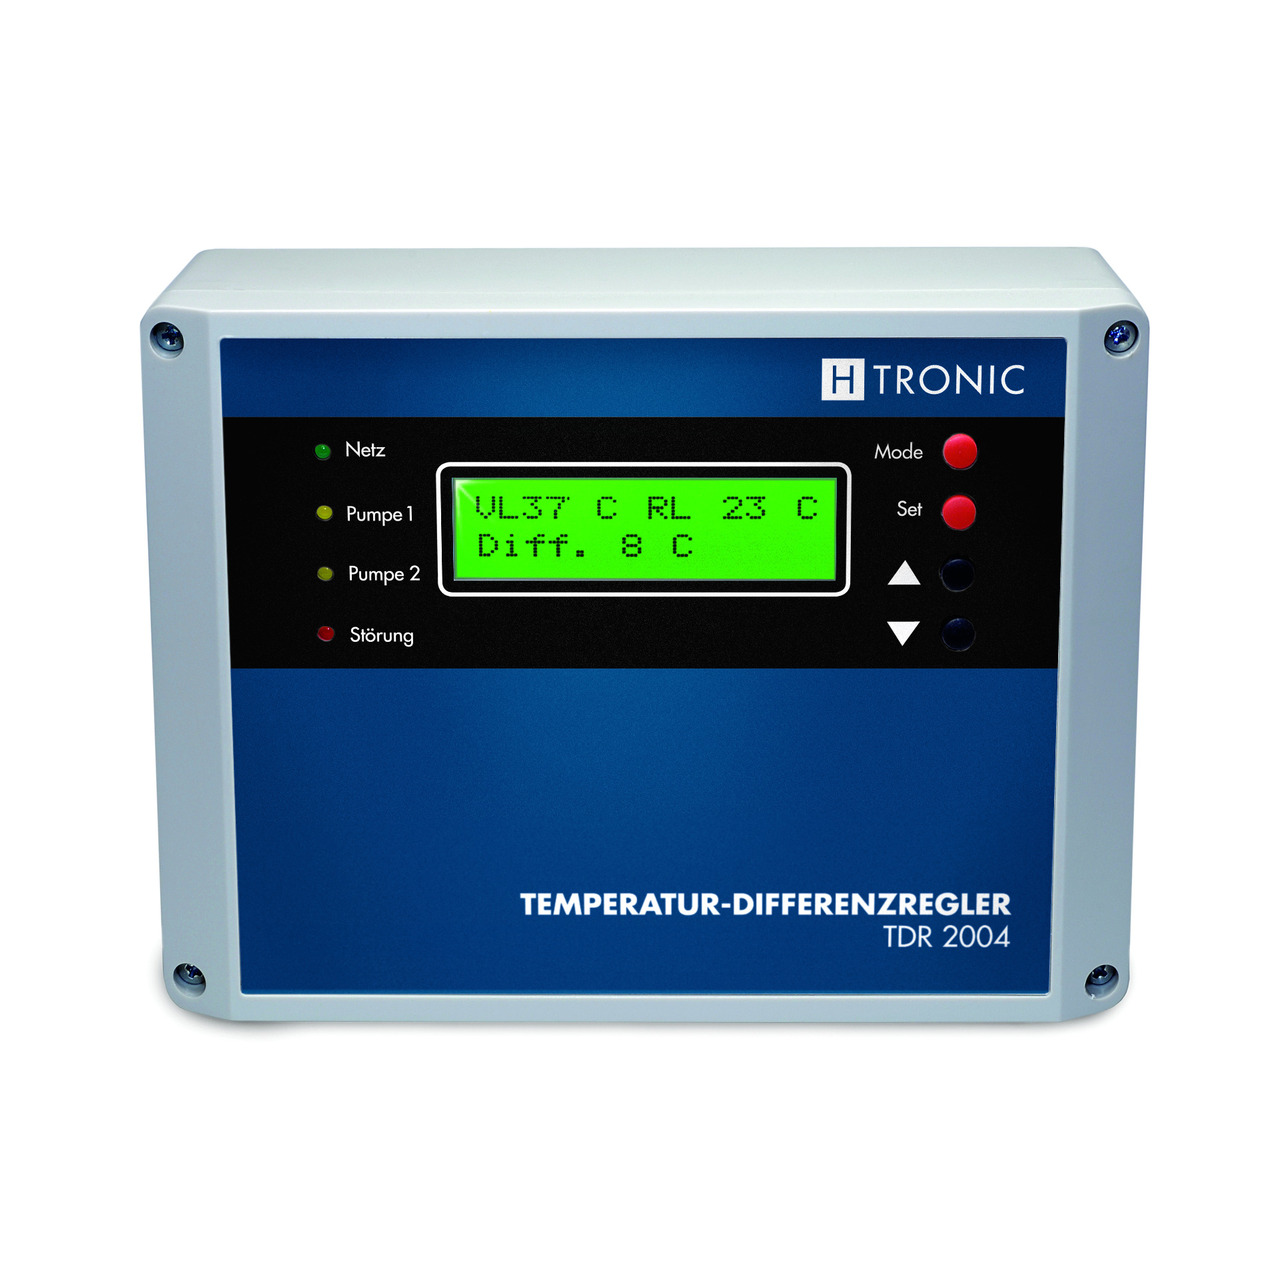 H-Tronic Solar-Temperatur-Differenzregler TDR 2004